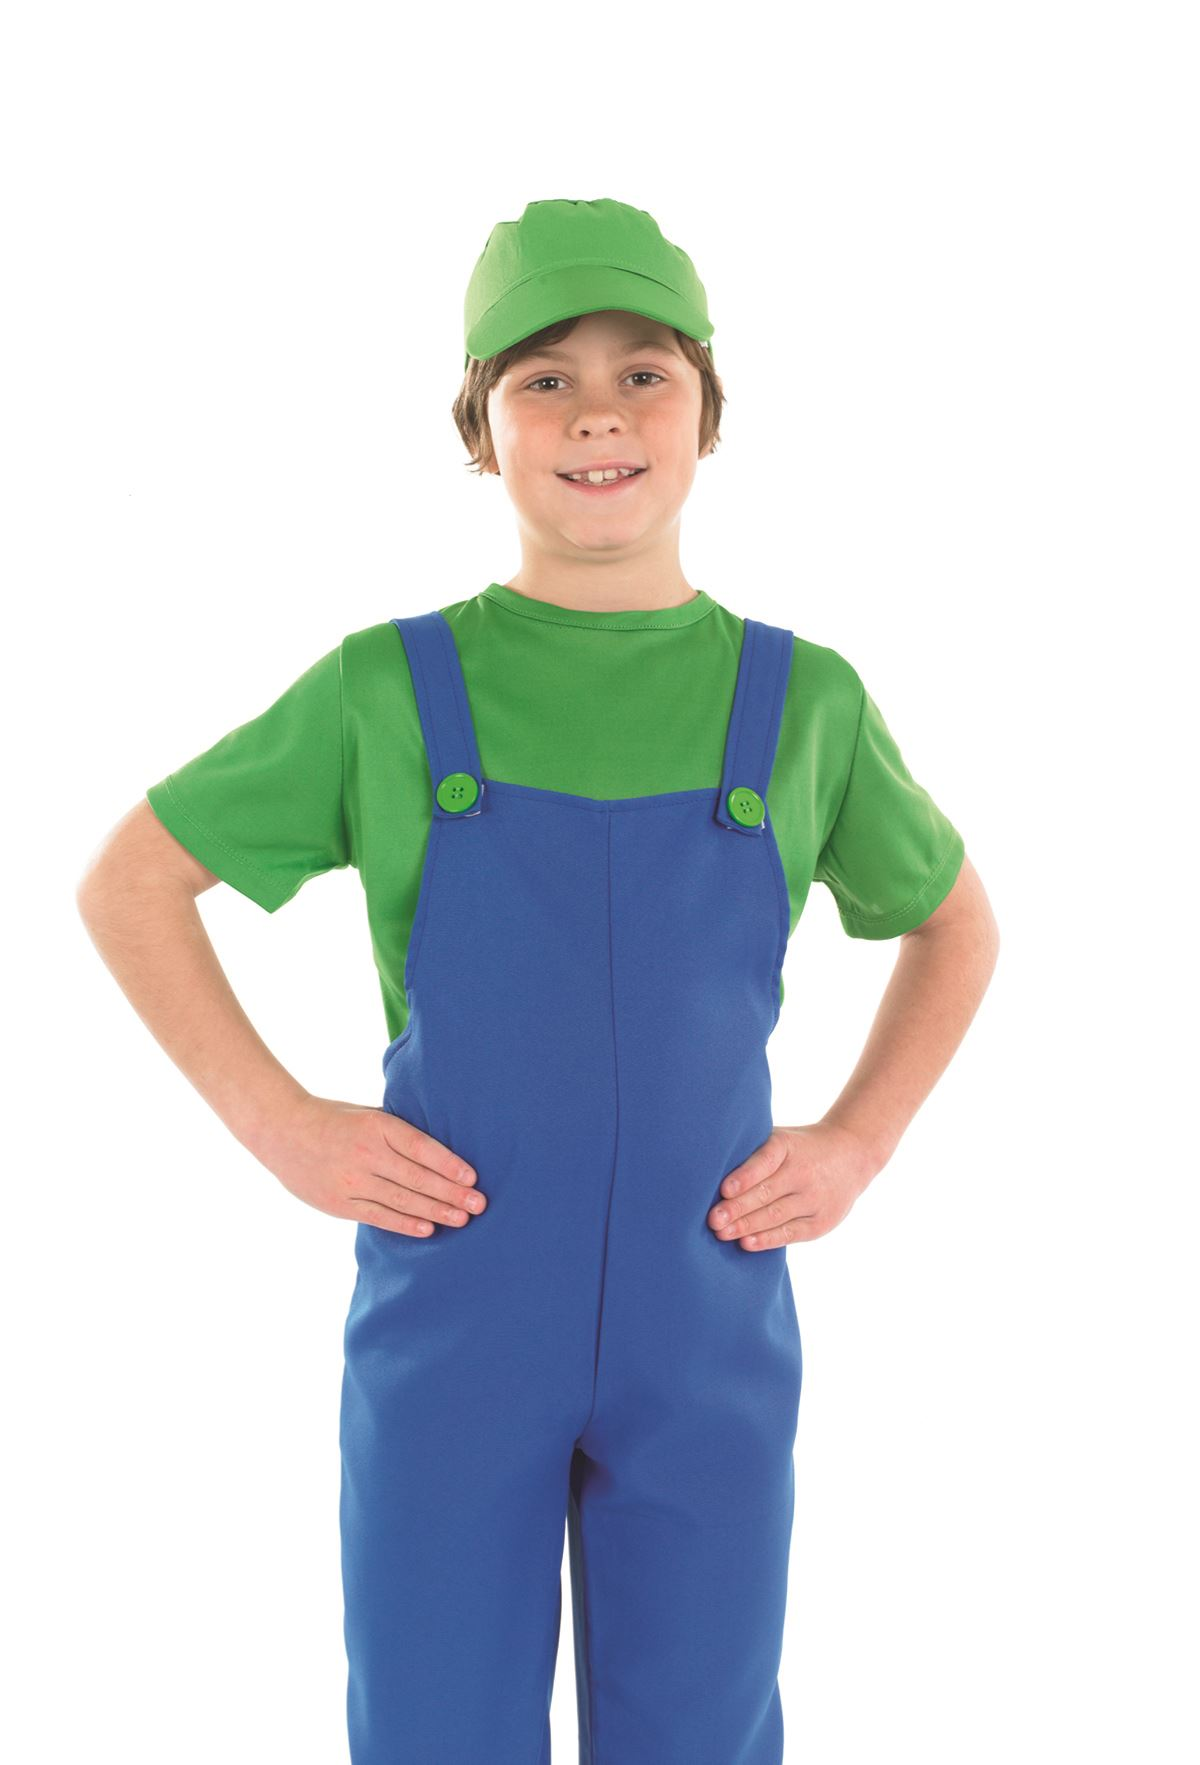 Boys-Plumber-Costume-Super-Mario-Bros-Luigi-80s-  sc 1 st  eBay & Boys Plumber Costume Super Mario Bros Luigi 80s 90s Fancy Dress ...